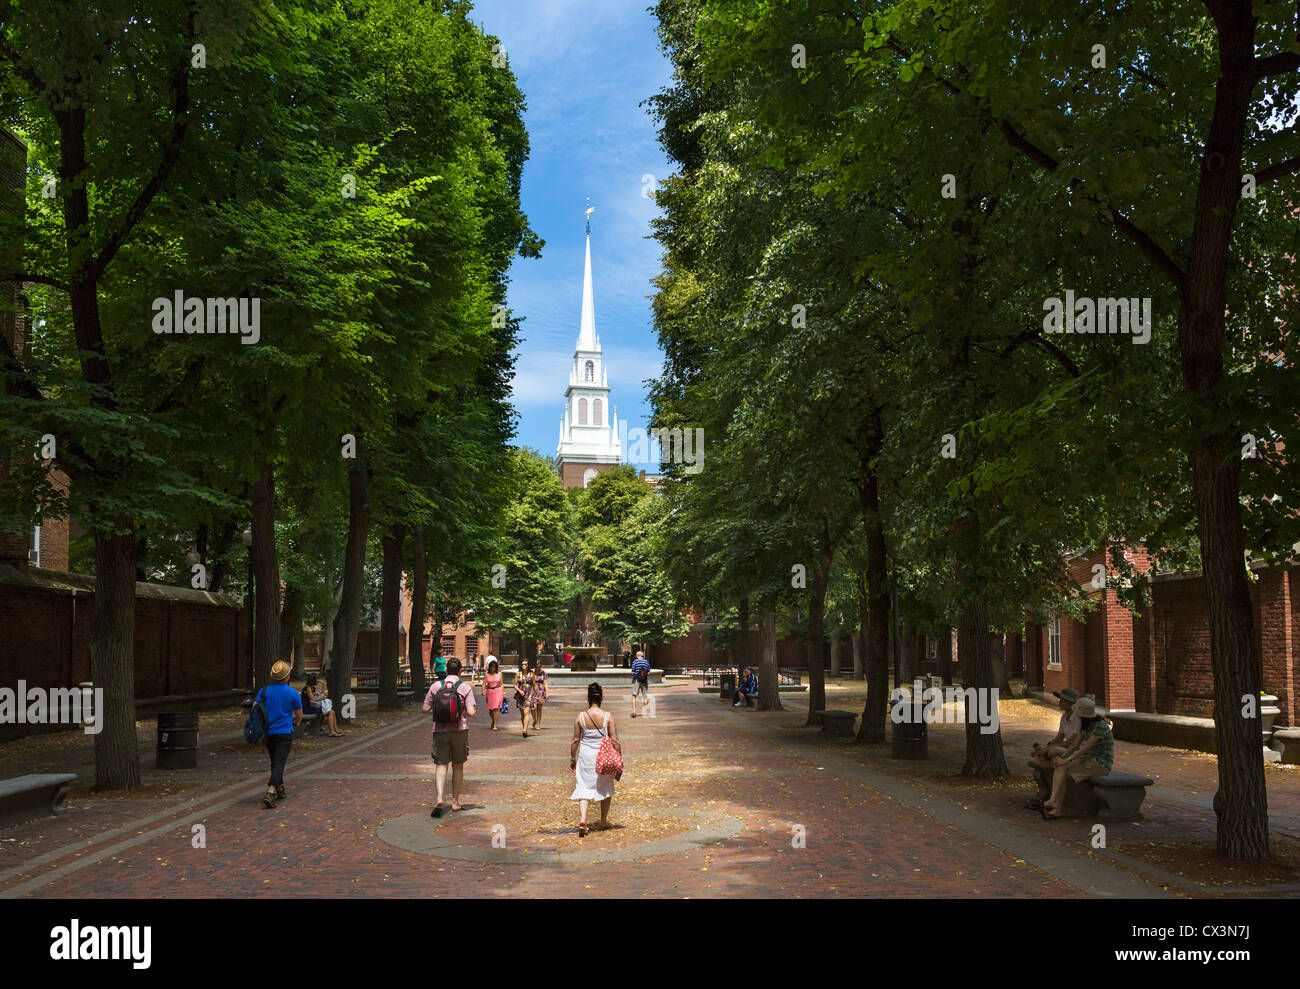 View down Paul Revere Mall to the Old North Church on the Freedom Trail, North End, Boston, Massachusetts, USA - Stock Image